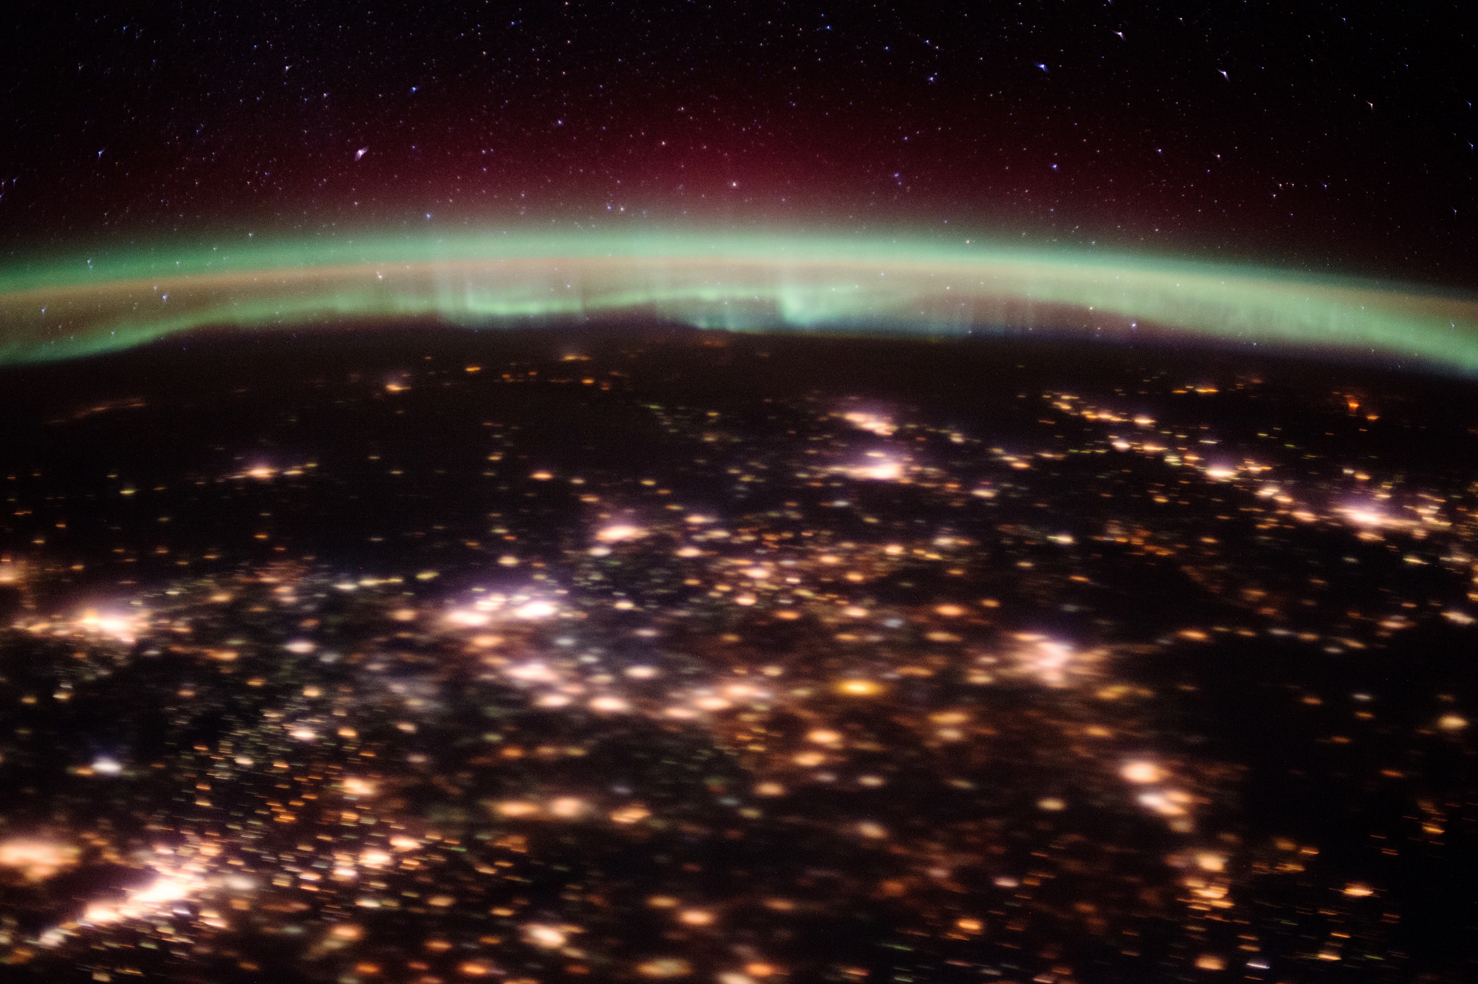 The Northern Lights as recorded by the ISS astronauts over the night lights of northern Europe in February 2016. Courtesy of NASA.